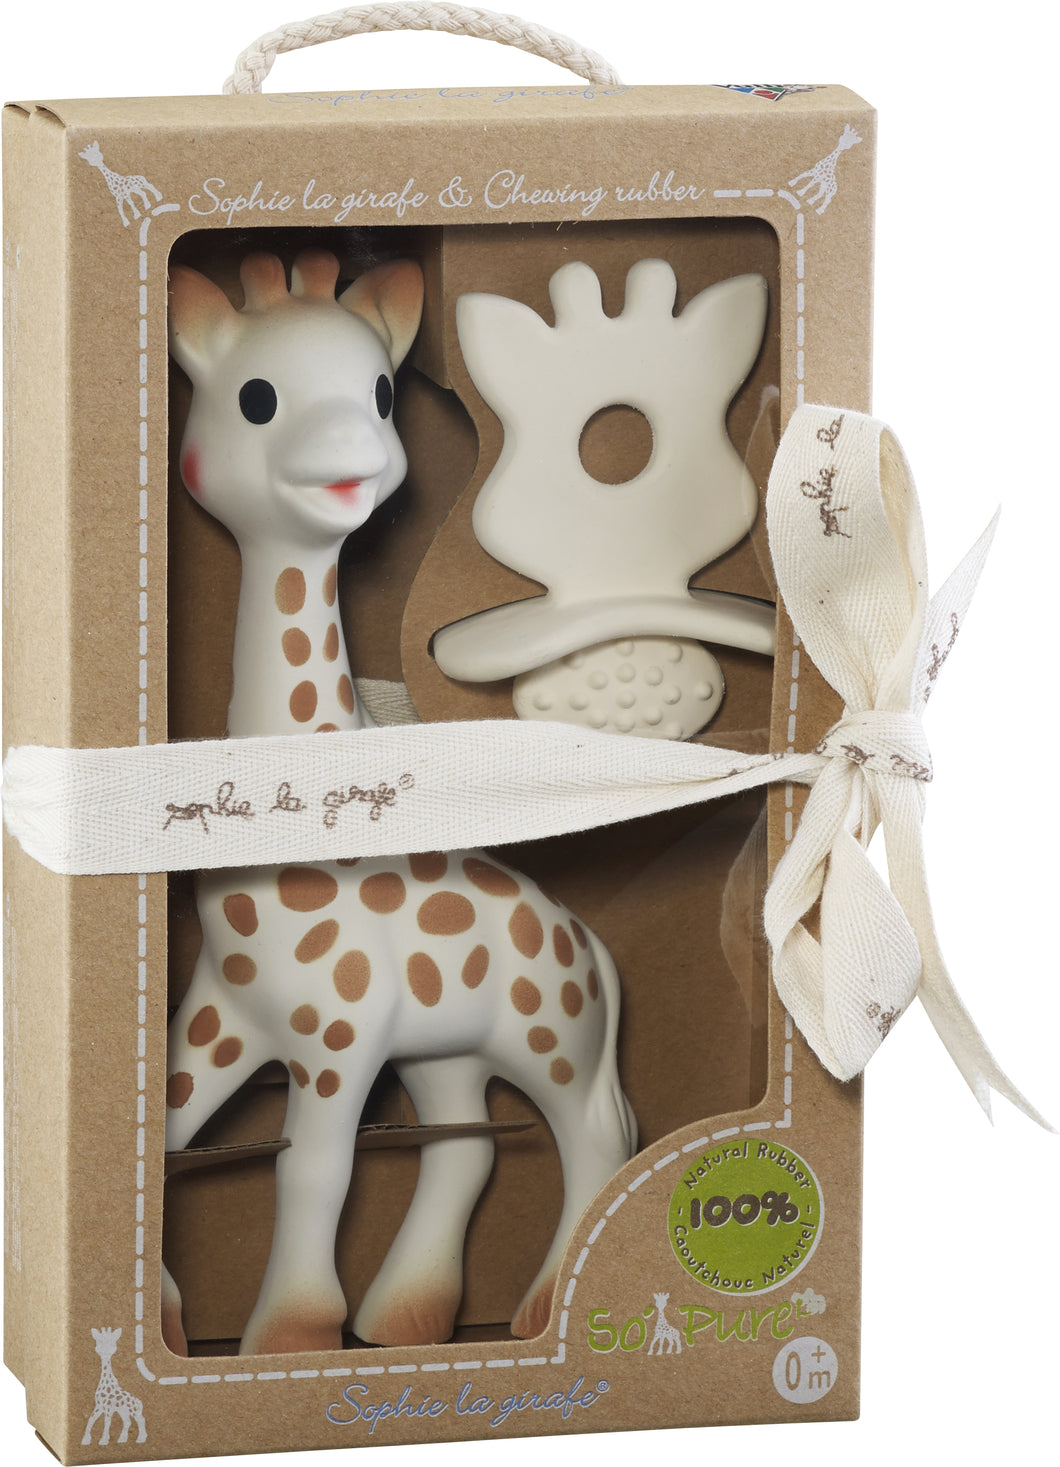 Sophie la Girafe - Teether Set https://babystuff.co.nz/products/sophie-la-girafe-teether-set The ideal gift for teething baby! Includes: Original Sophie the Giraffe, baby's first toy to stimulate all their senses A Natural Teether made from 100% natural rubber. Suitable from 0 months + Sales channels Manage Available on 4 of 4  Online Store  Facebook Mobile App Aftership store connector Organization Product type  toys Vendor  www.babystuff.co.nz Collections There are no collections available to add this pro